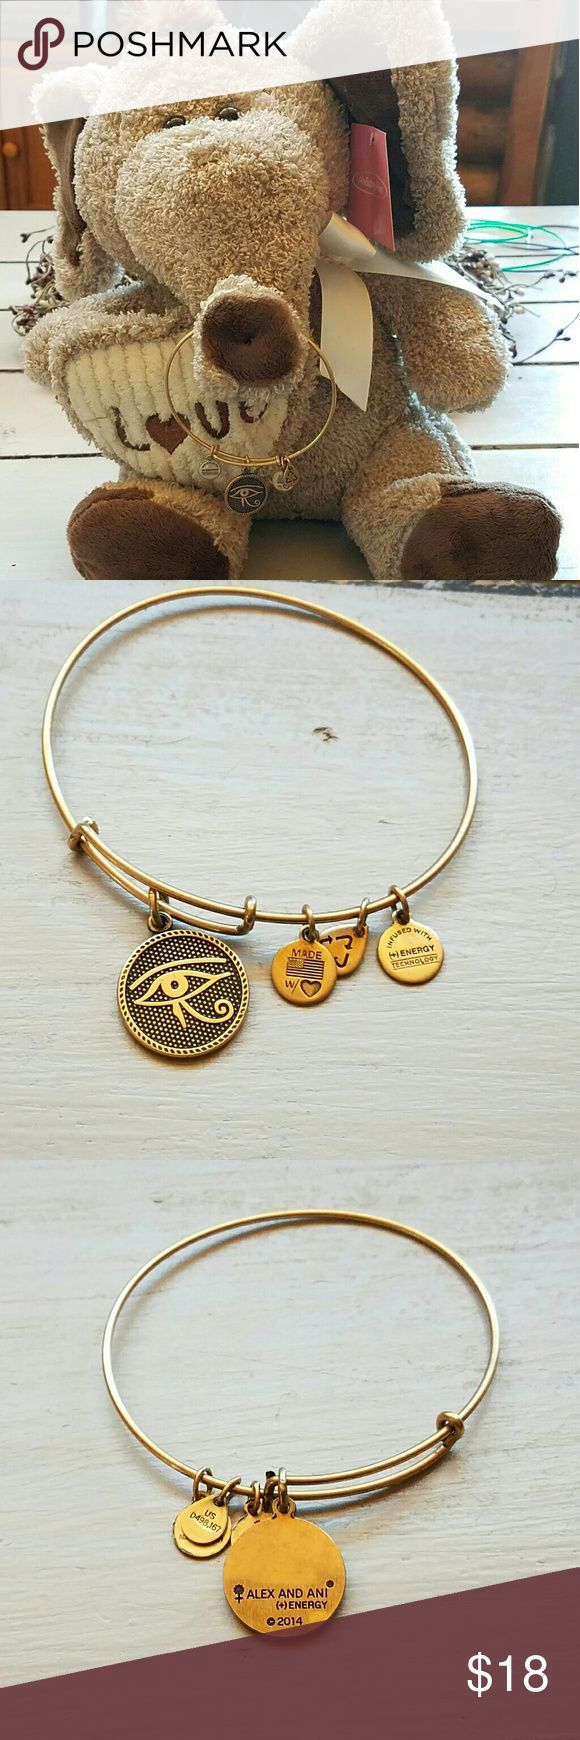 "Alex and Ani the eye of Horus gold color finish This is from the Alex and Ani 2014 energy technology line. It is in excellent condition with the eye of horus and rafelian gold color finish. Please contact me with any questions. Spotlight On: Eye Of Horus Charm Bangle  ""Looking for a sacred symbol of protection? The Eye of Horus Charm Bangle is an ideal choice."" Alex & Ani Jewelry Bracelets"